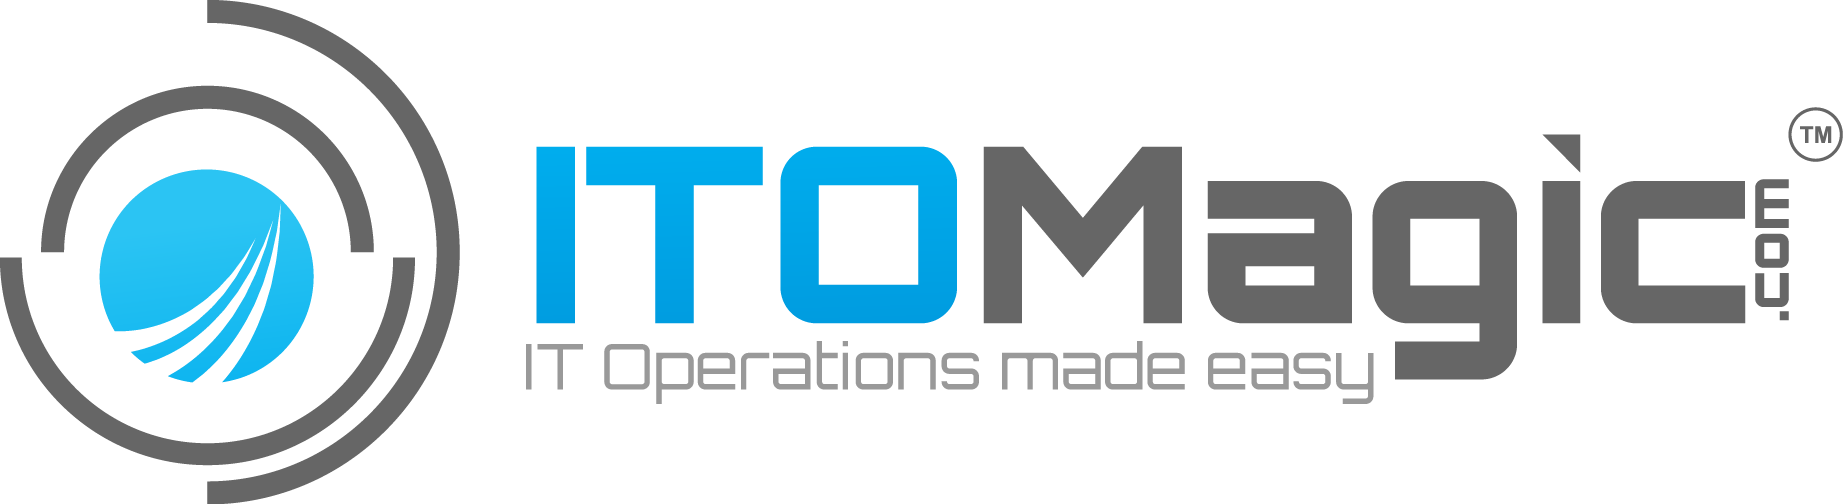 ITOMagic, IT Operations made easy, IT solutions for small businesses